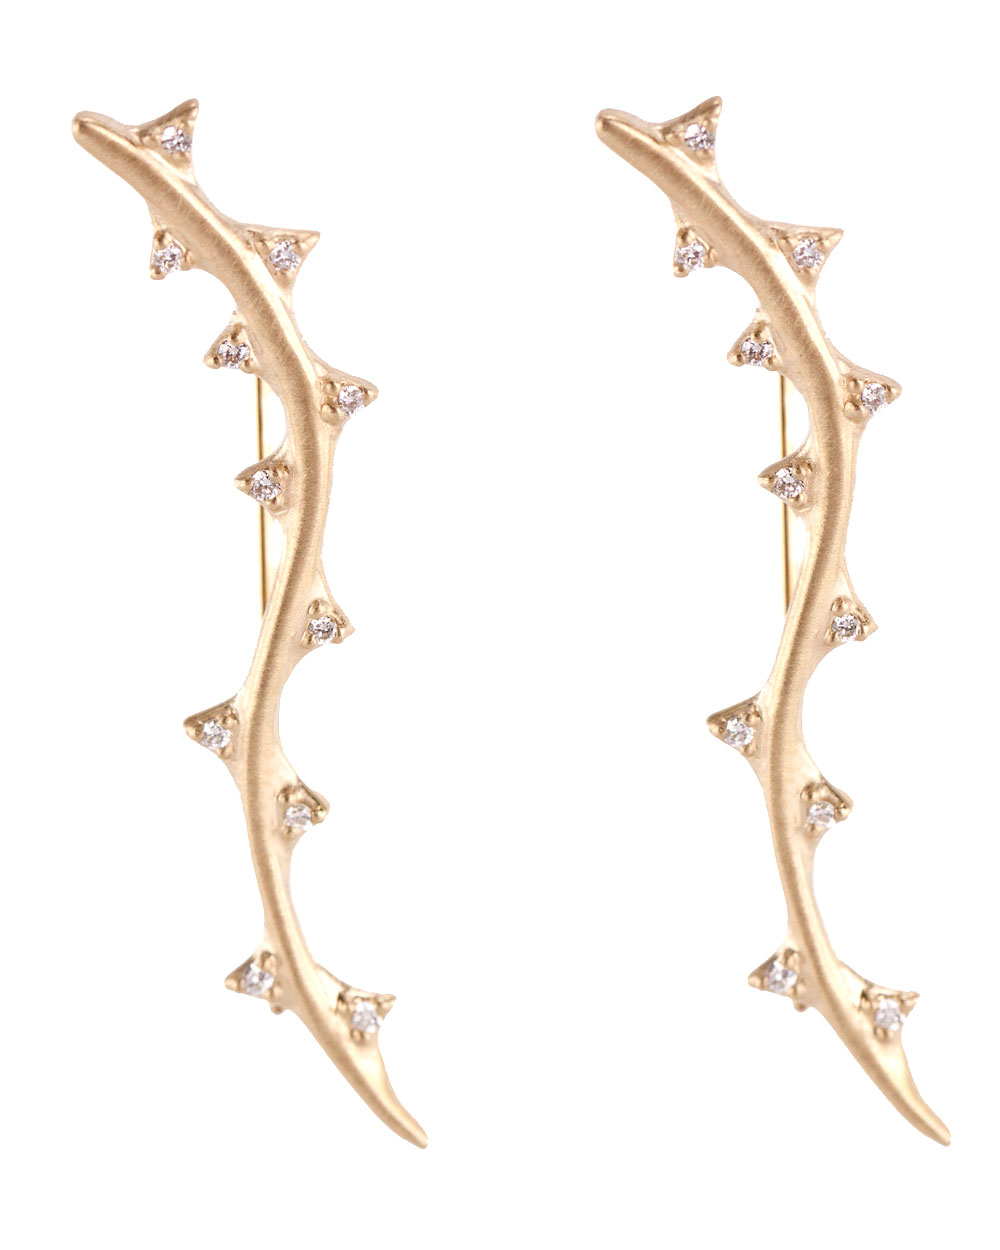 Thorn Vine earrings in diamonds and 14k gold, $2,190, available at  Stanley Korshak .